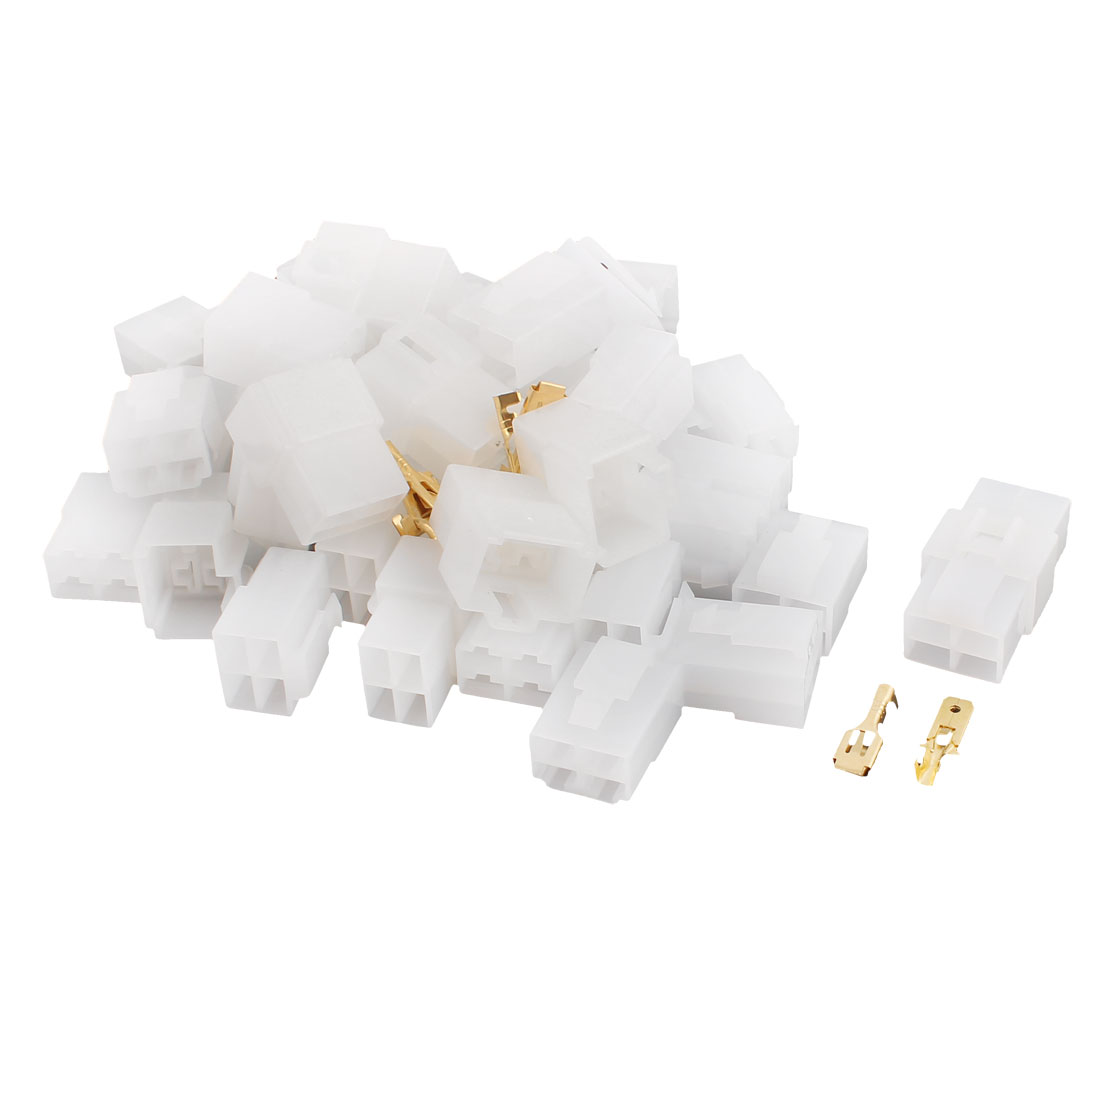 "20 Sets Nylon Latching Connector 4P 6.3mm 1/4"" Male Female for 18-14AWG Wire"